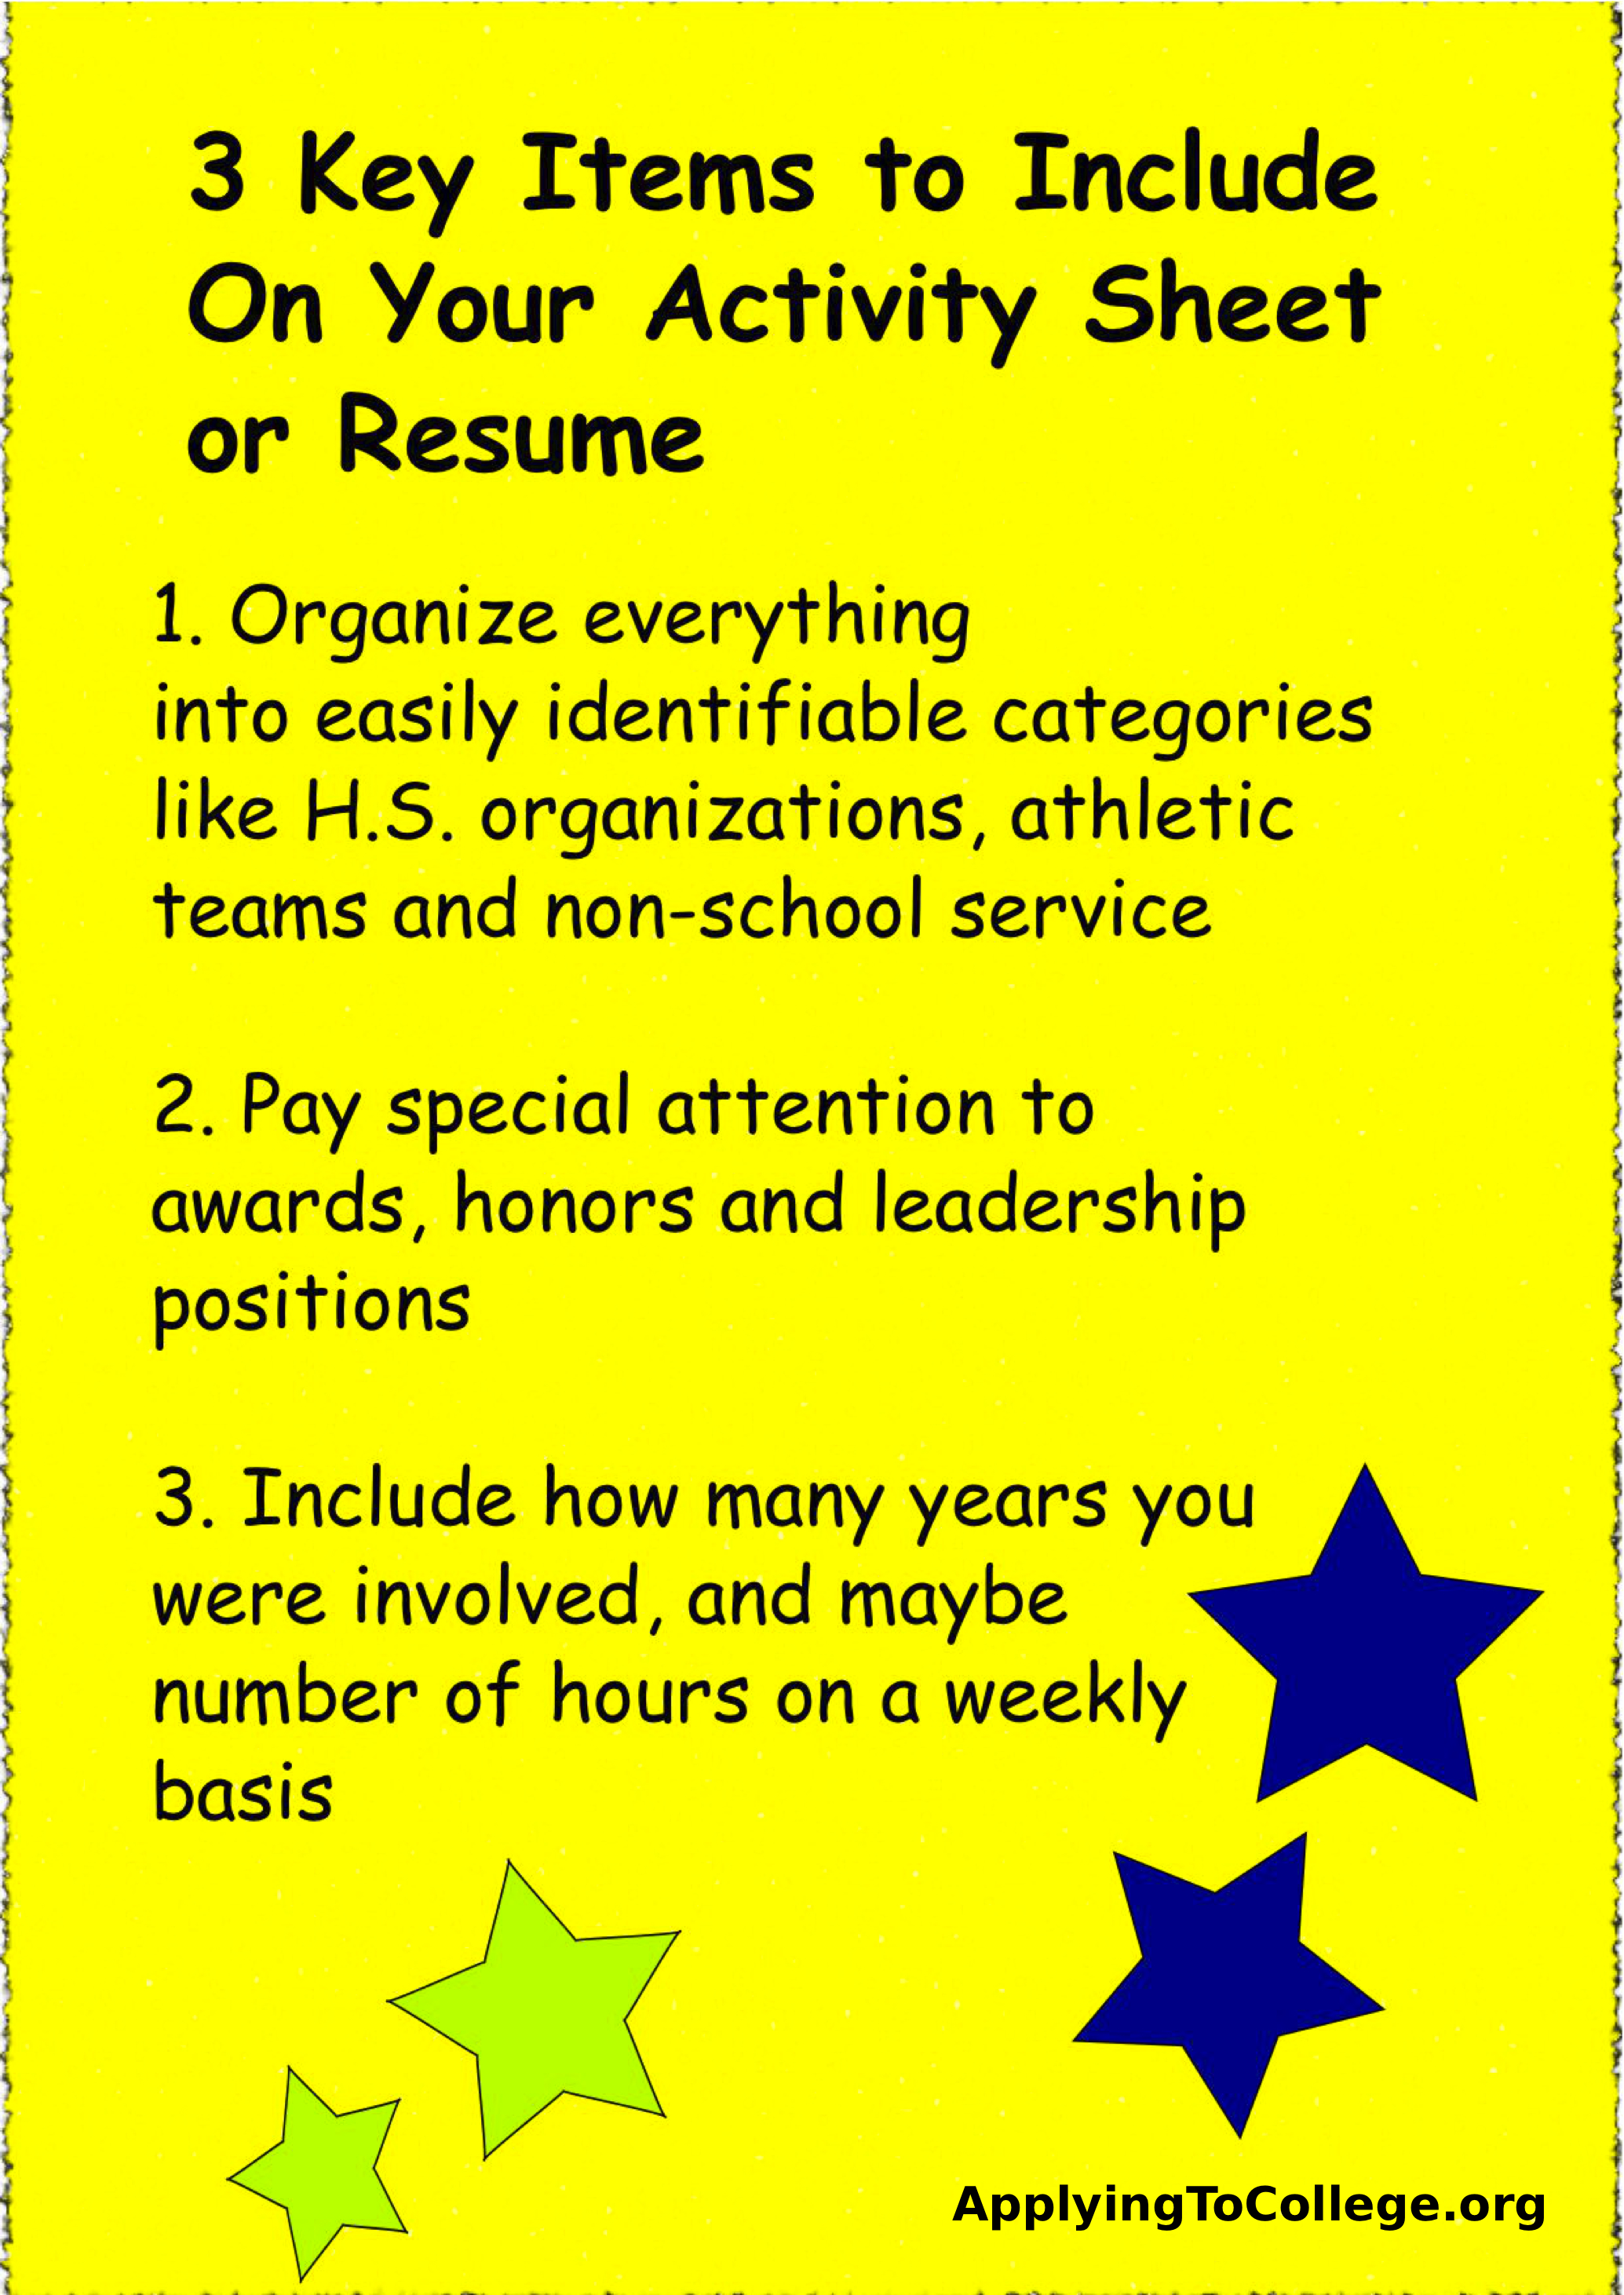 Resumes And Activity Sheets  Applying To College